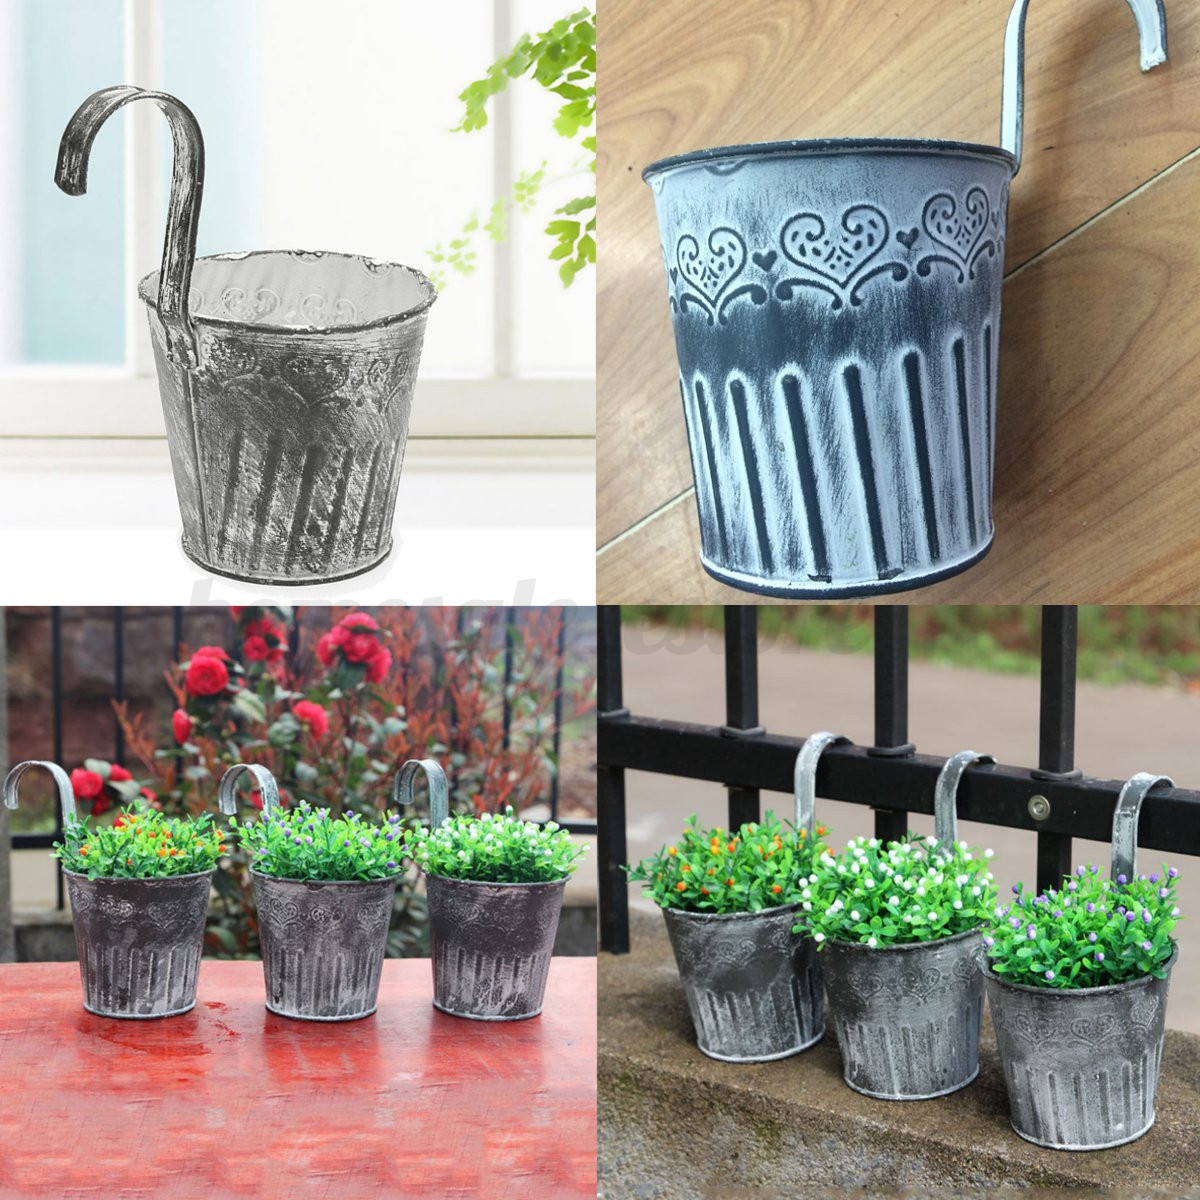 Vintage metal hanging planter flower pot balcony garden for Decorative hanging pots